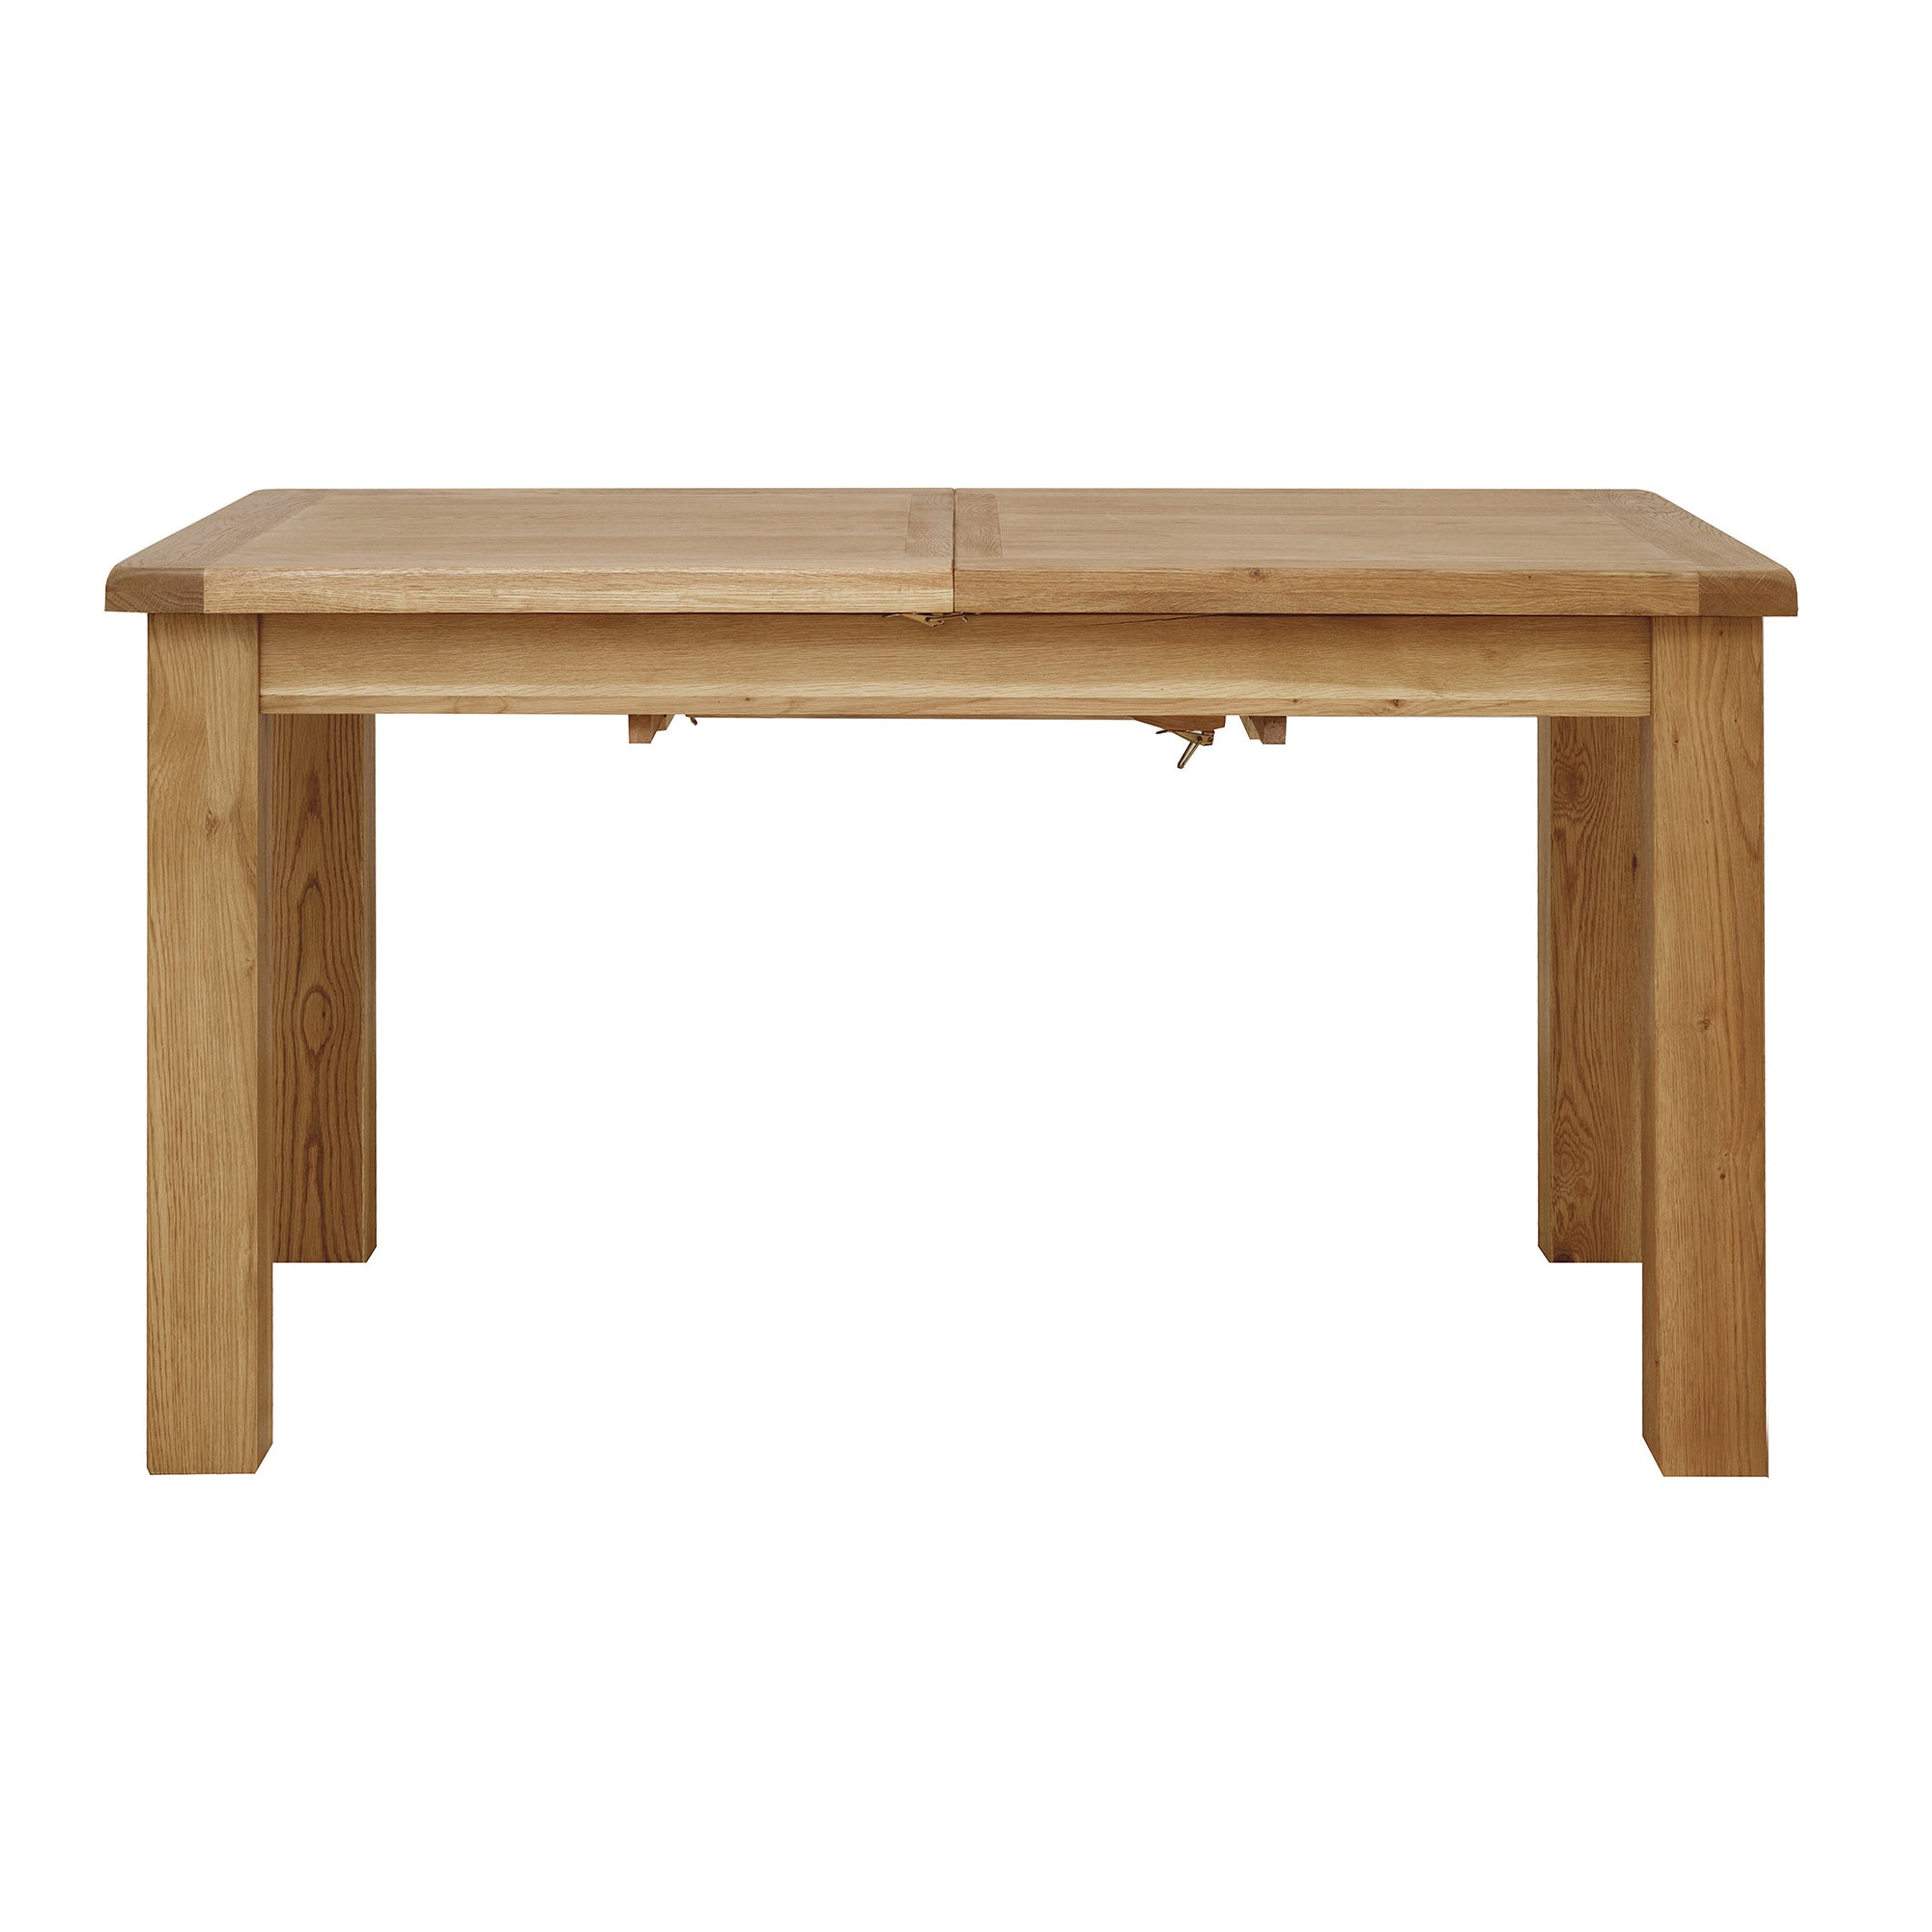 Aylesbury Oak Compact Extendable Dining Table